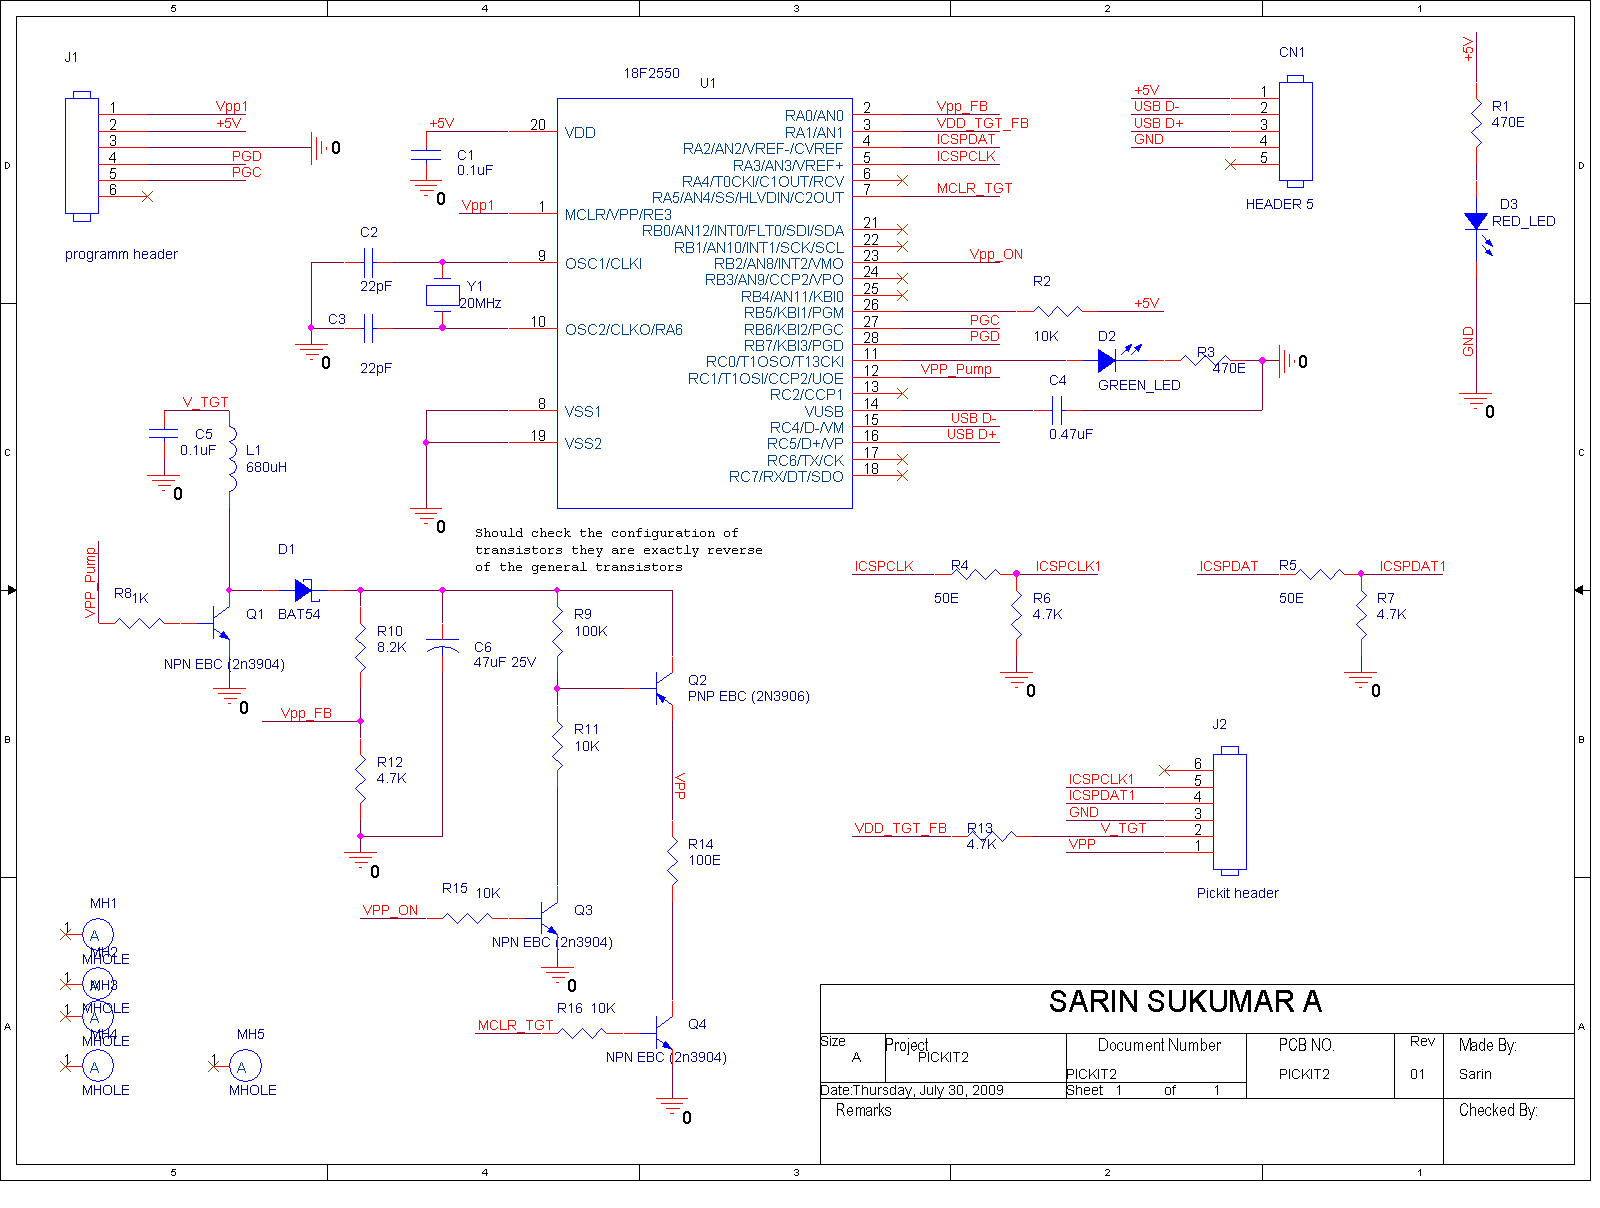 pickit2 Pickit Clone Schematic on eeprom programmer schematic, camera schematic, ipad schematic, h bridge schematic, microcontroller schematic, avr schematic, usb schematic, blinking led schematic, eprom programmer schematic, breadboard schematic, arduino schematic,